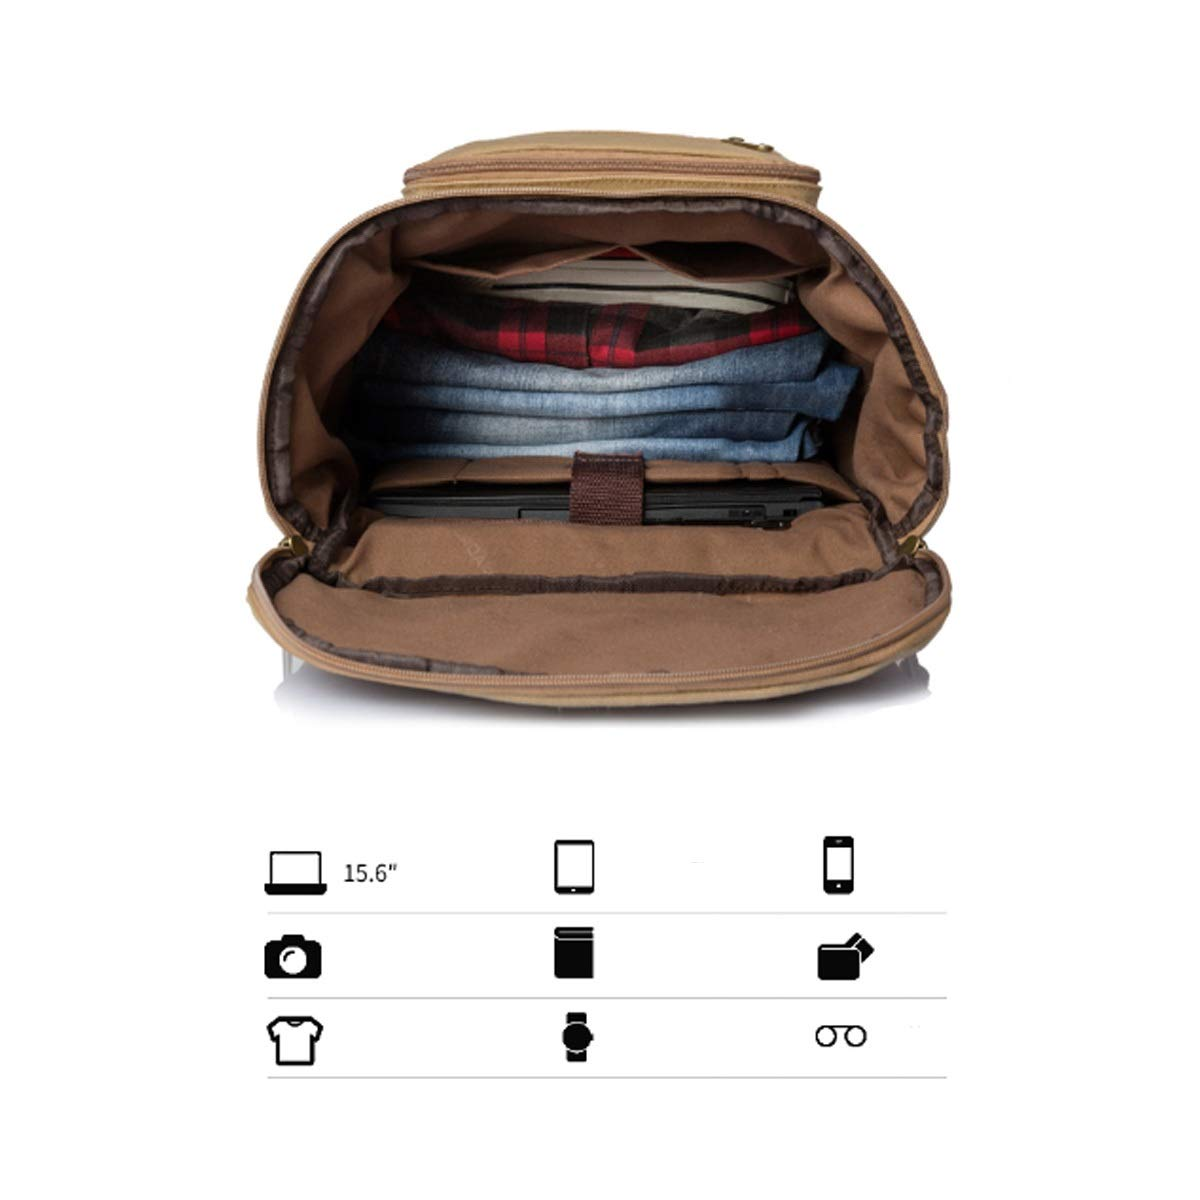 Canvas Shoulder Bag Xiaoningmeng Mountaineering Bag Classic Black 55L Duffel Bag Travel Essential Color : Black Large Capacity Brown